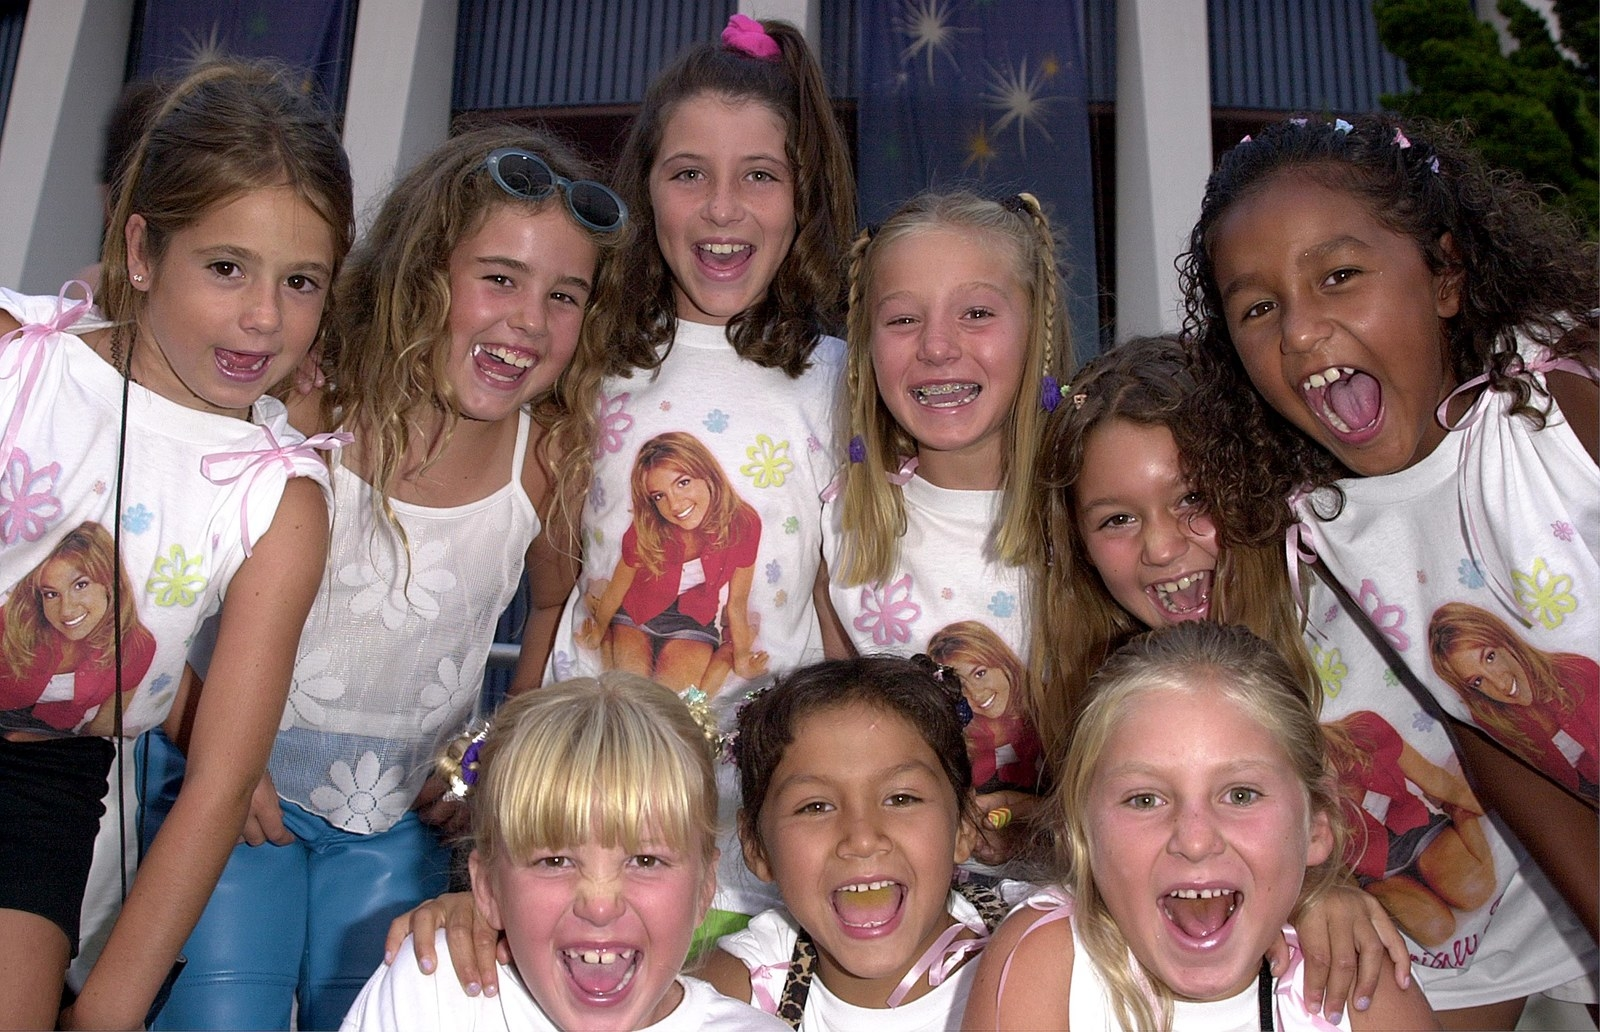 a group of young britney fans